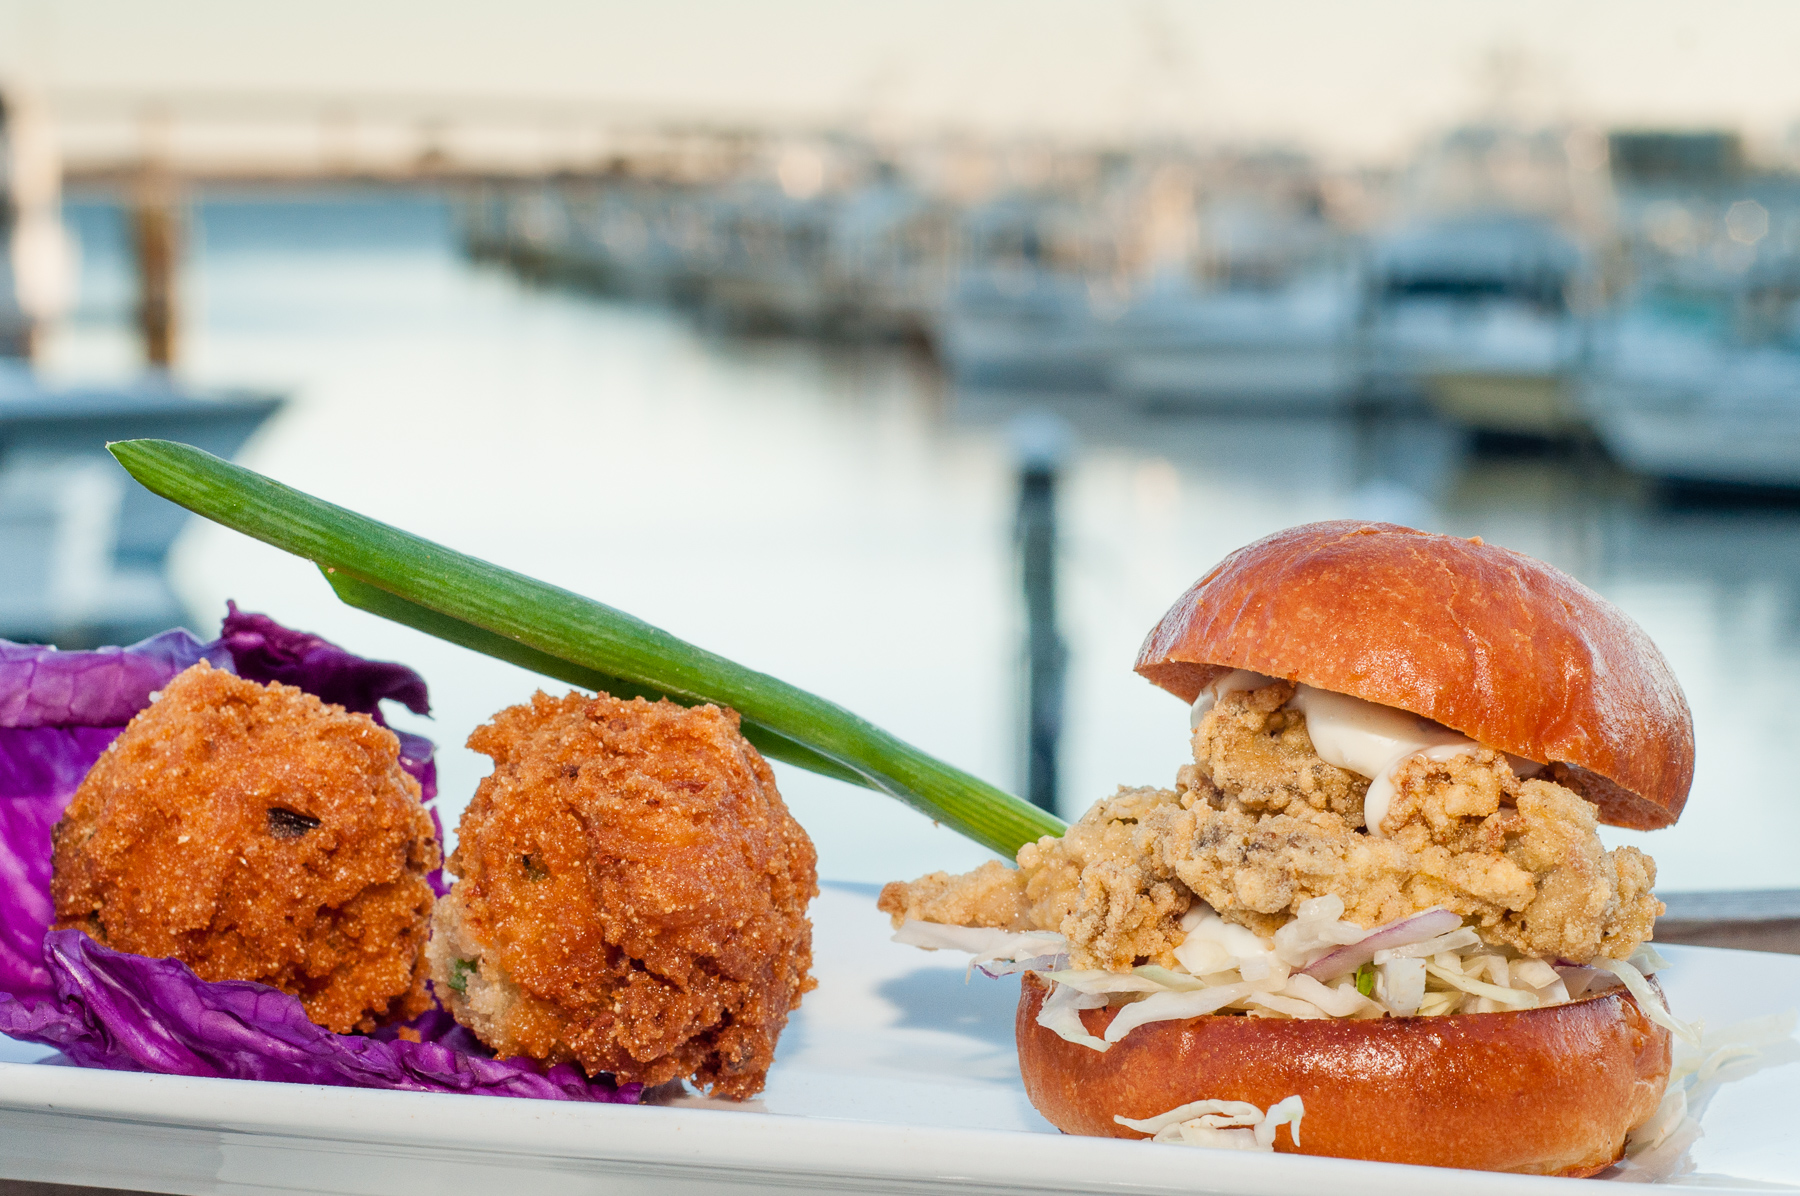 Oyster Sliders with Jicama Slaw and Hushpuppies